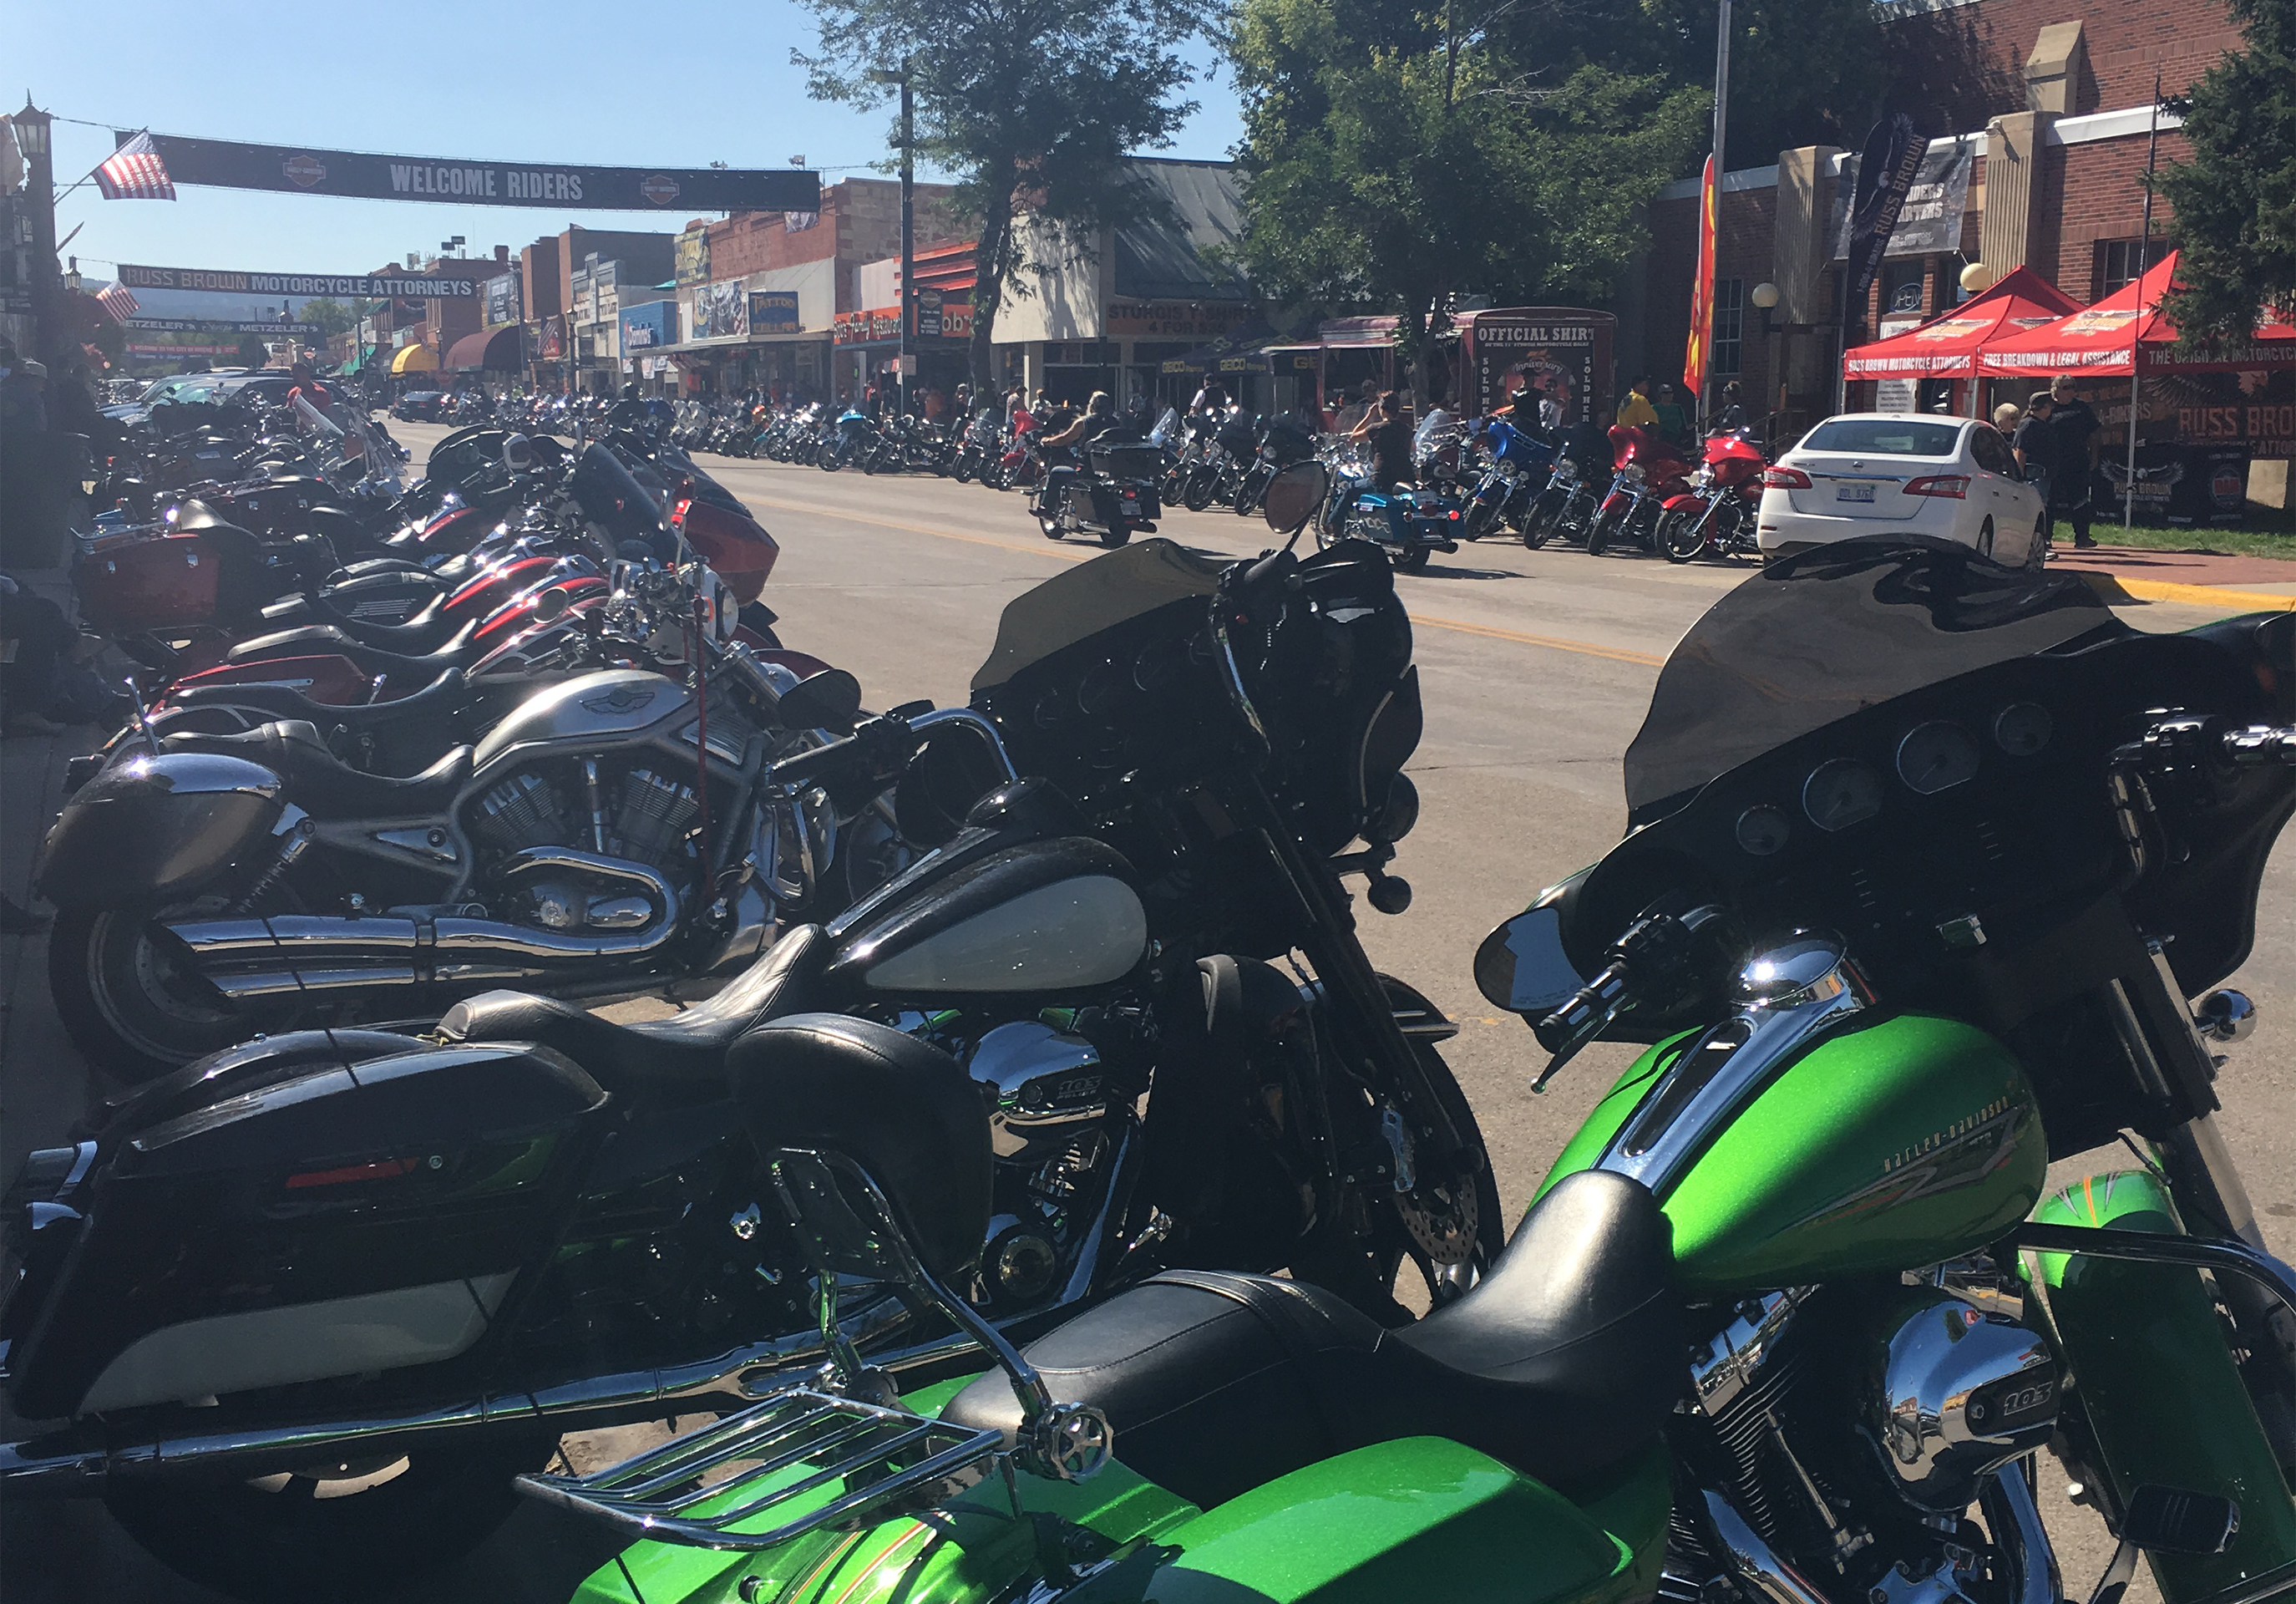 Sex trafficking during the Sturgis Motorcycle Rally